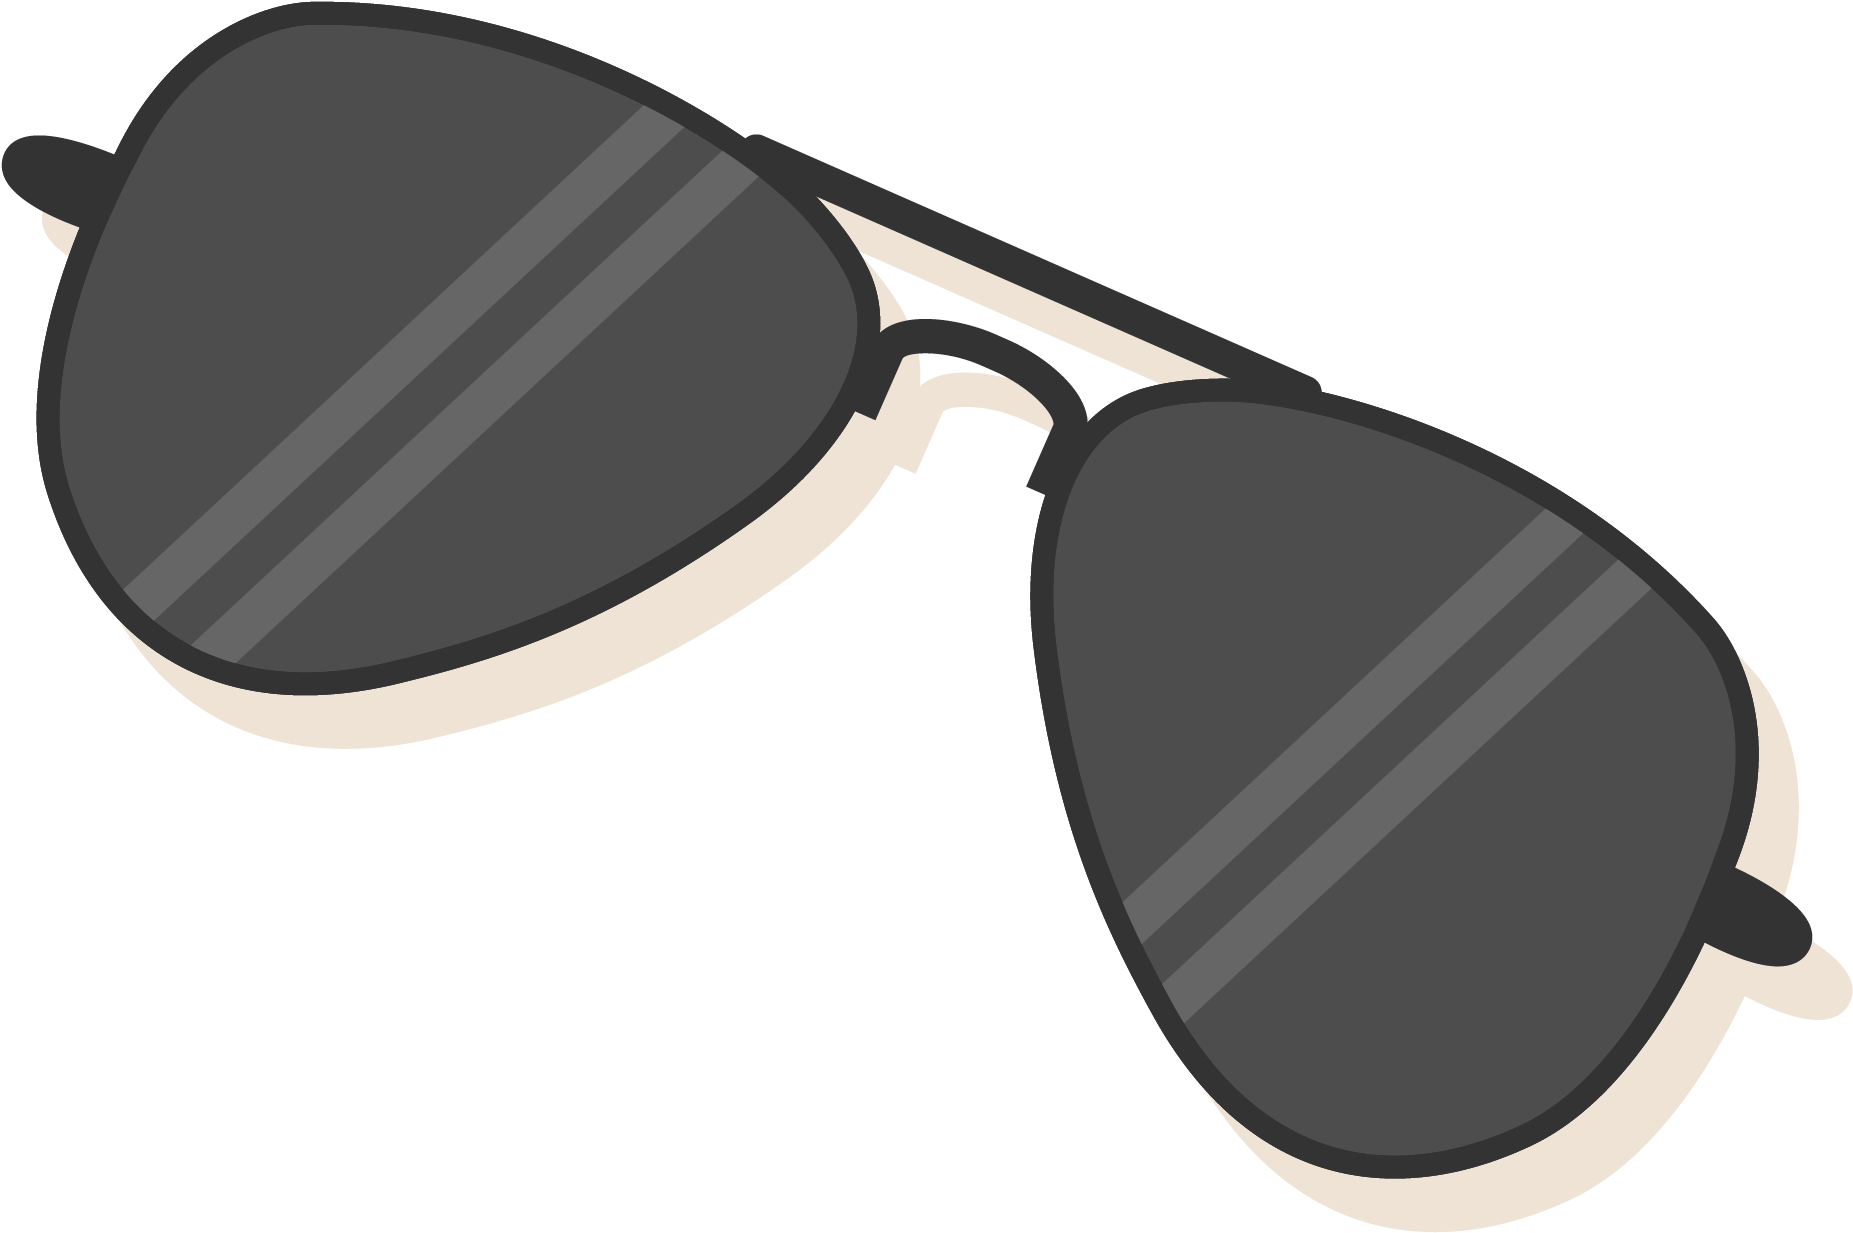 Sunglasses clipart transparent background. Cartoon with a